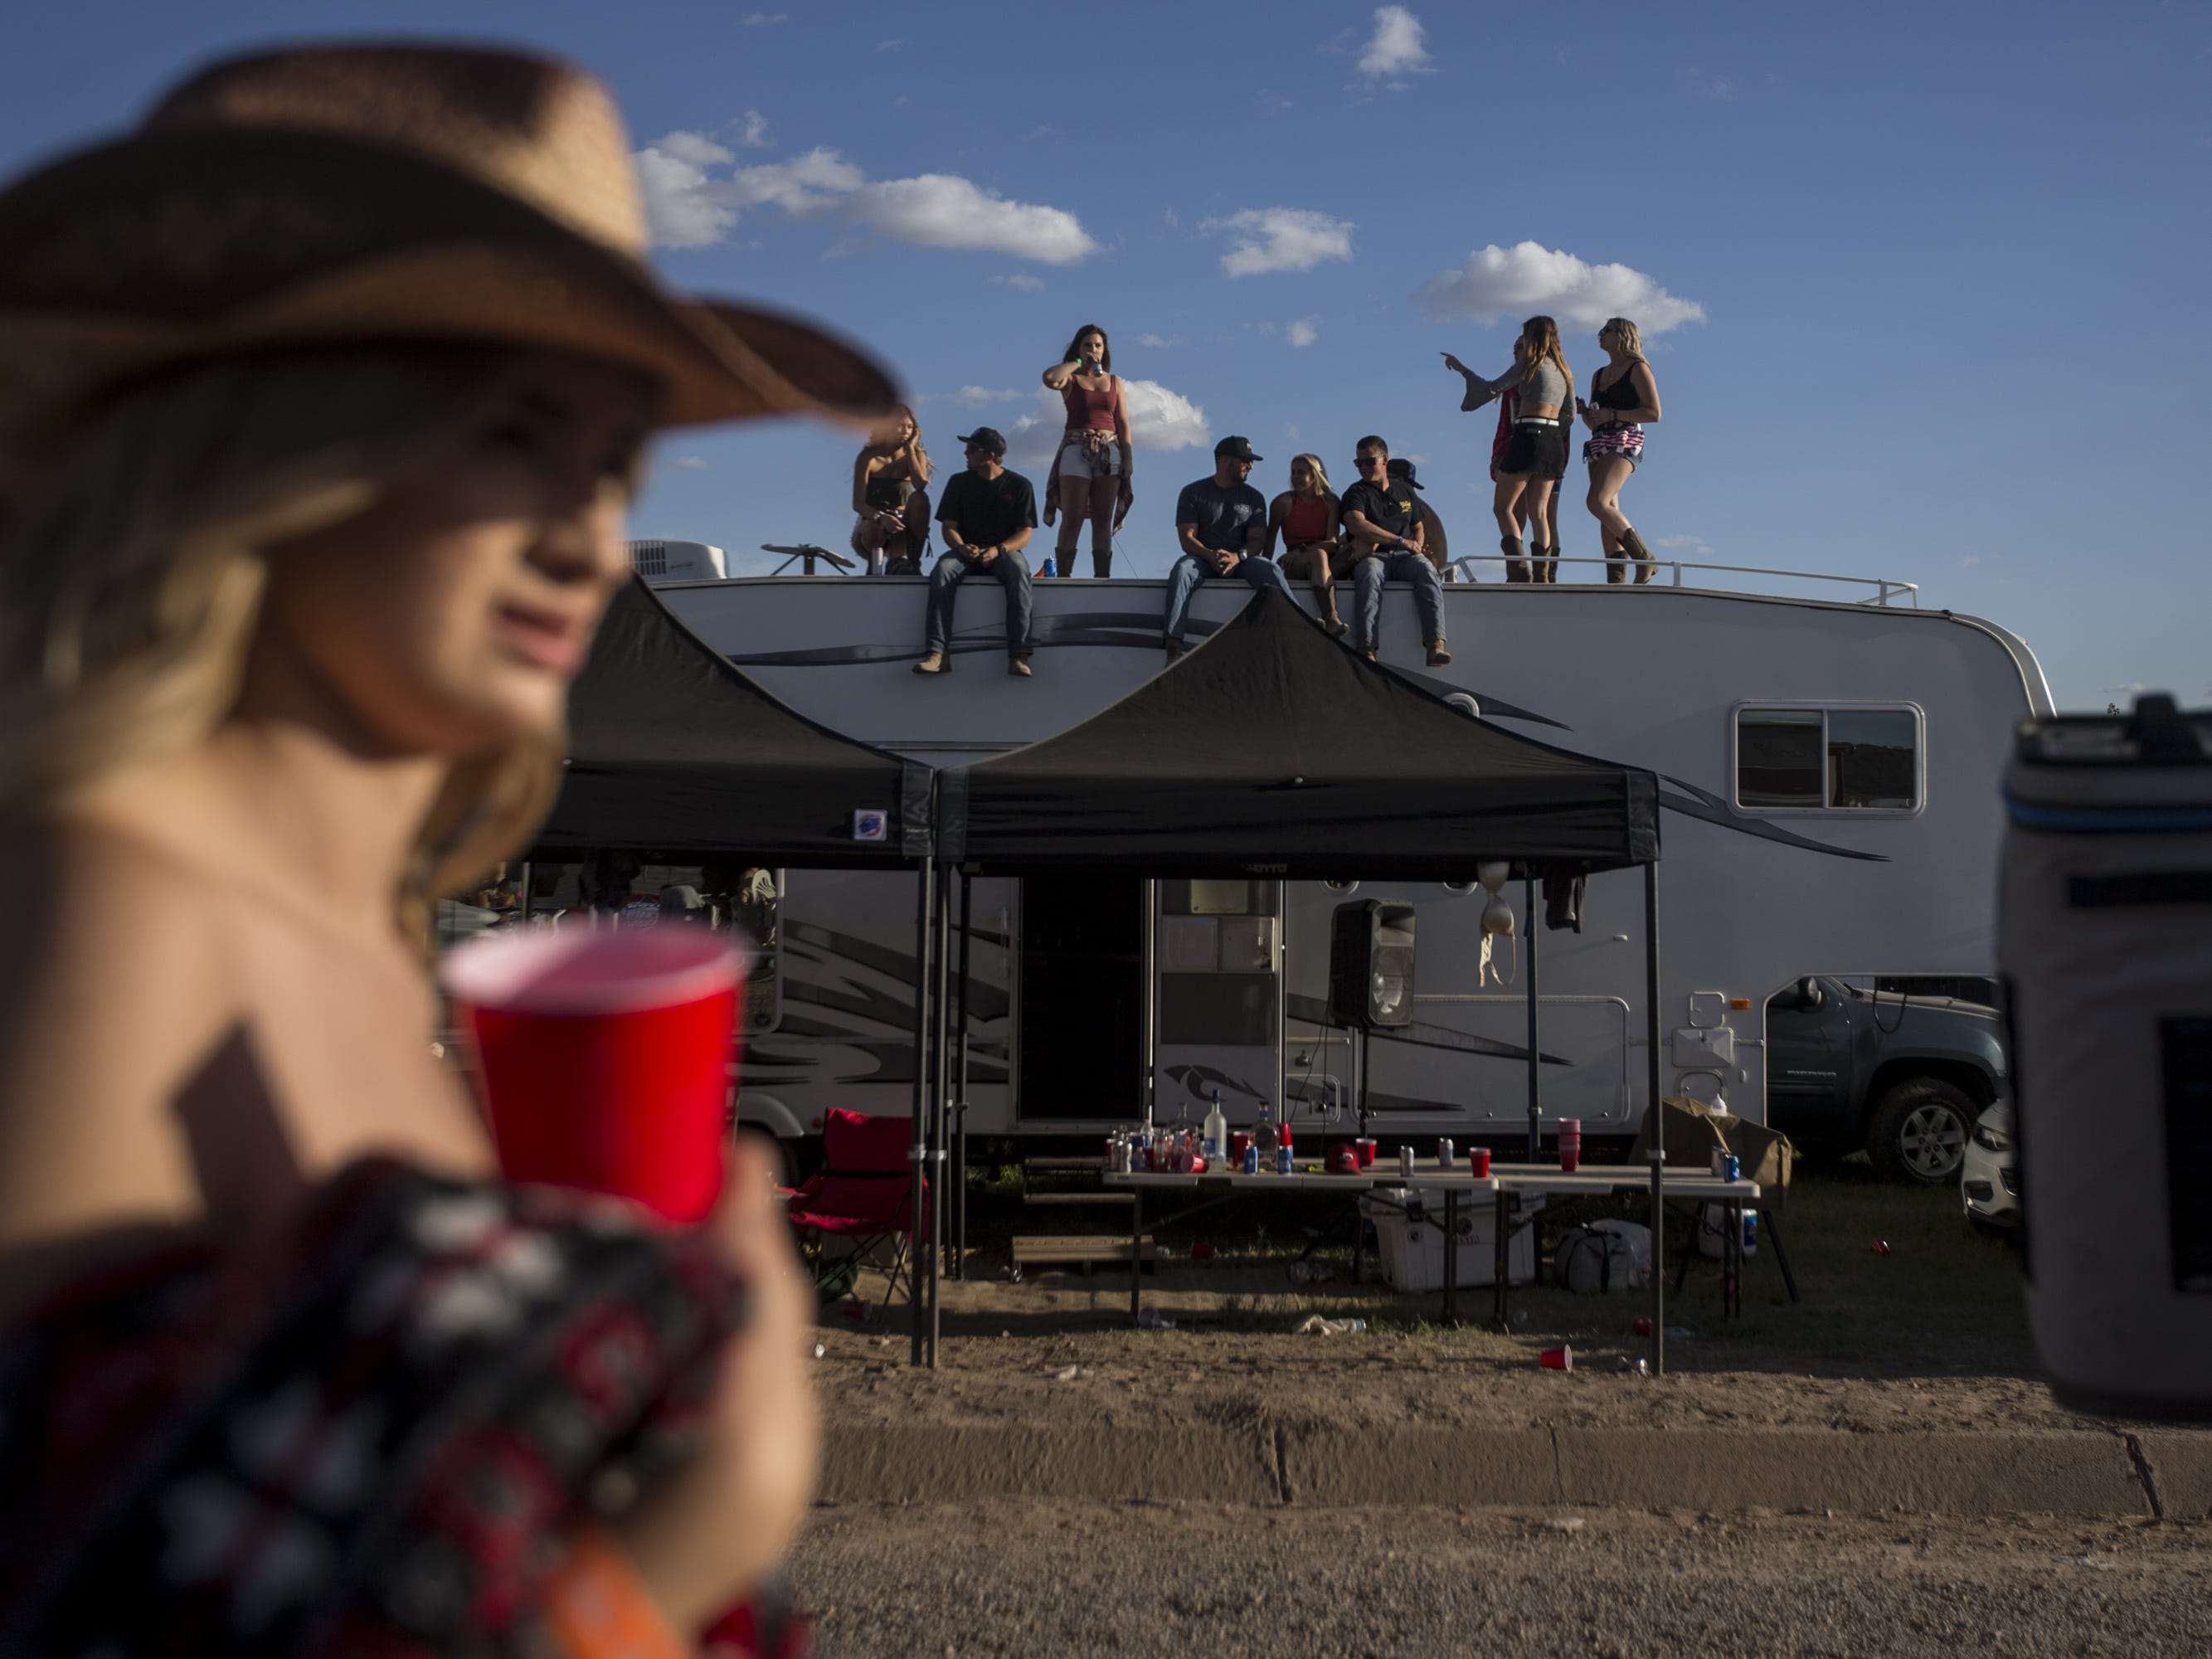 Festival-goers stand on top of an RV on Friday, April 12, 2019, during Day 2 of Country Thunder Arizona in Florence, Ariz.